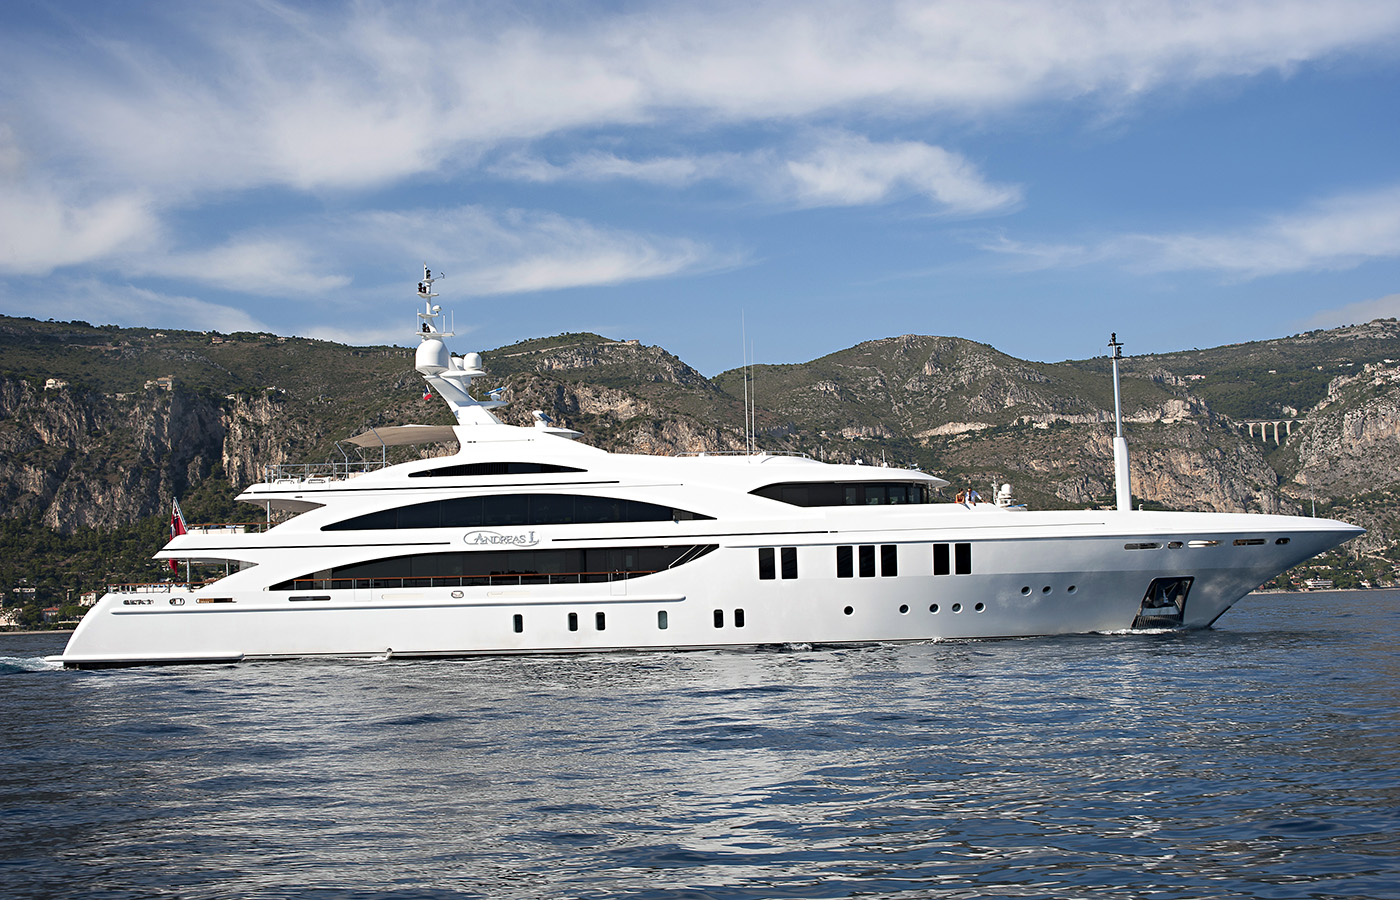 ANDREAS-L-yacht-for-sale-01.jpg